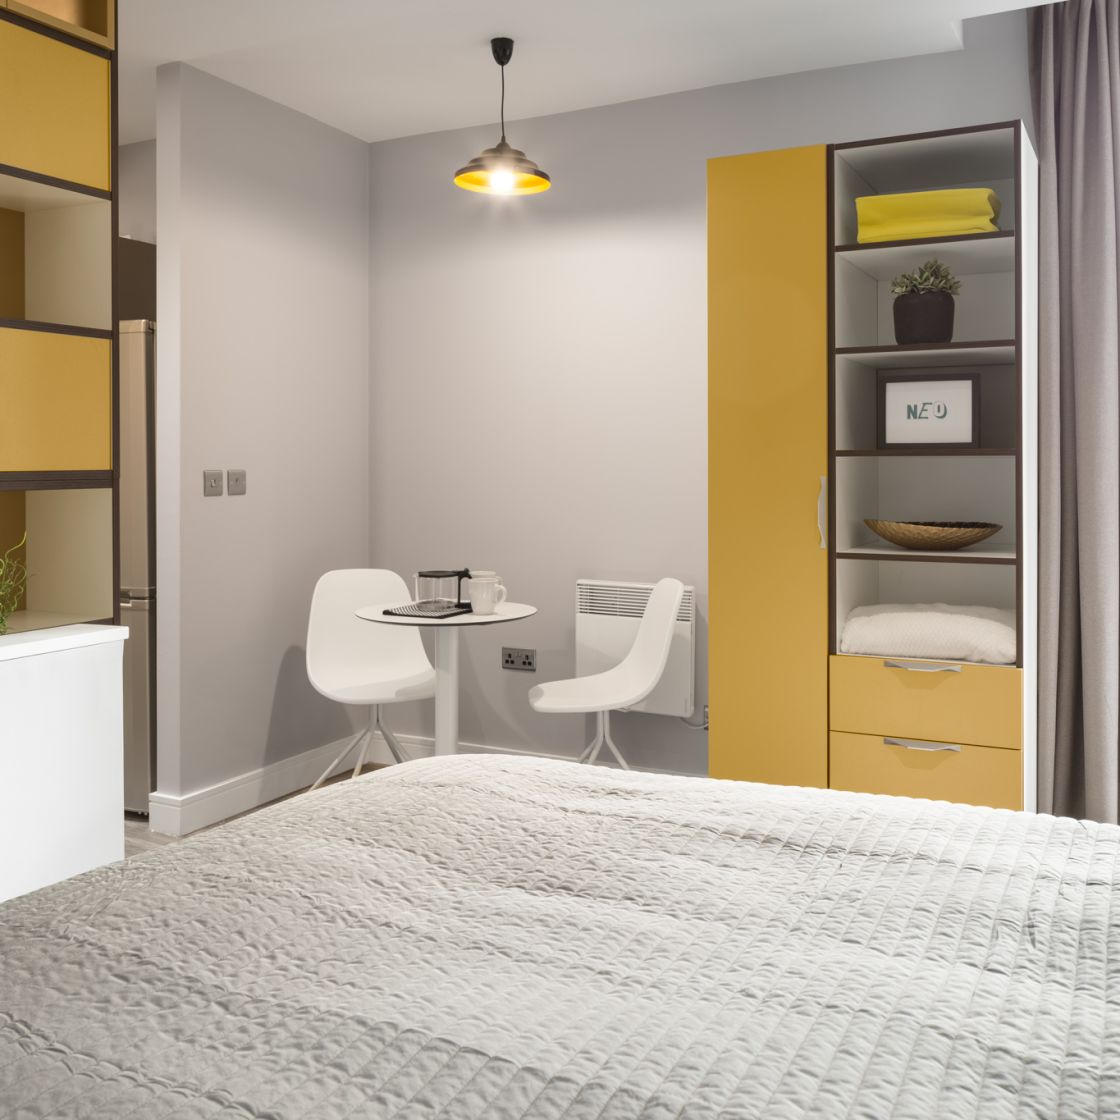 Grande Student Apartment in Liverpool. Double Bed, TV and dining table IconInc, The Ascent